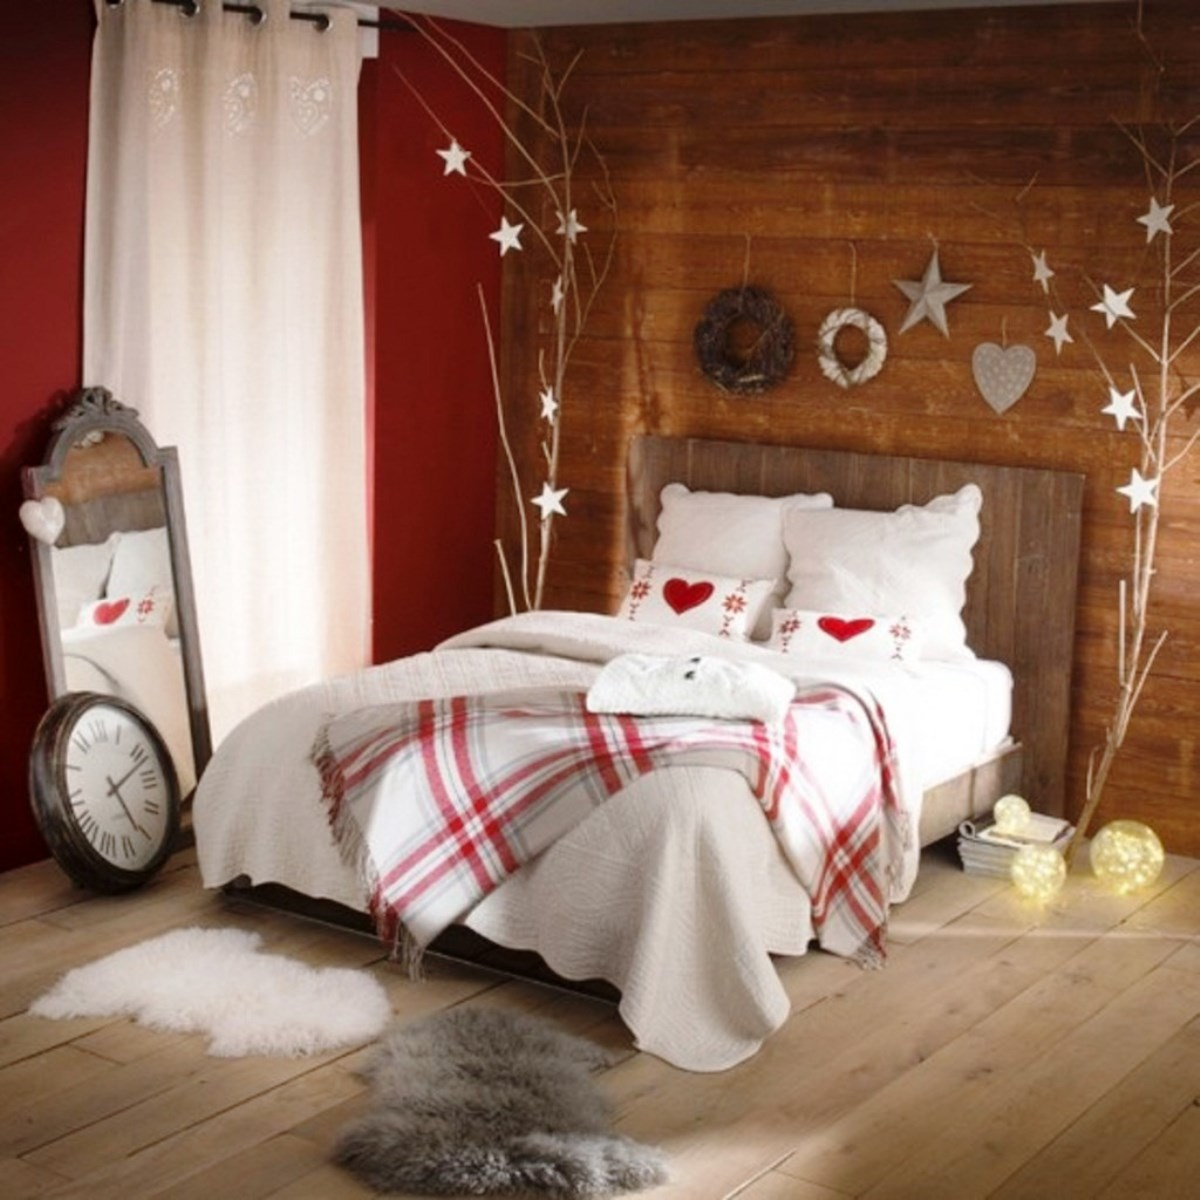 Http Residencestyle Com 30 Christmas Bedroom Decorations Ideas